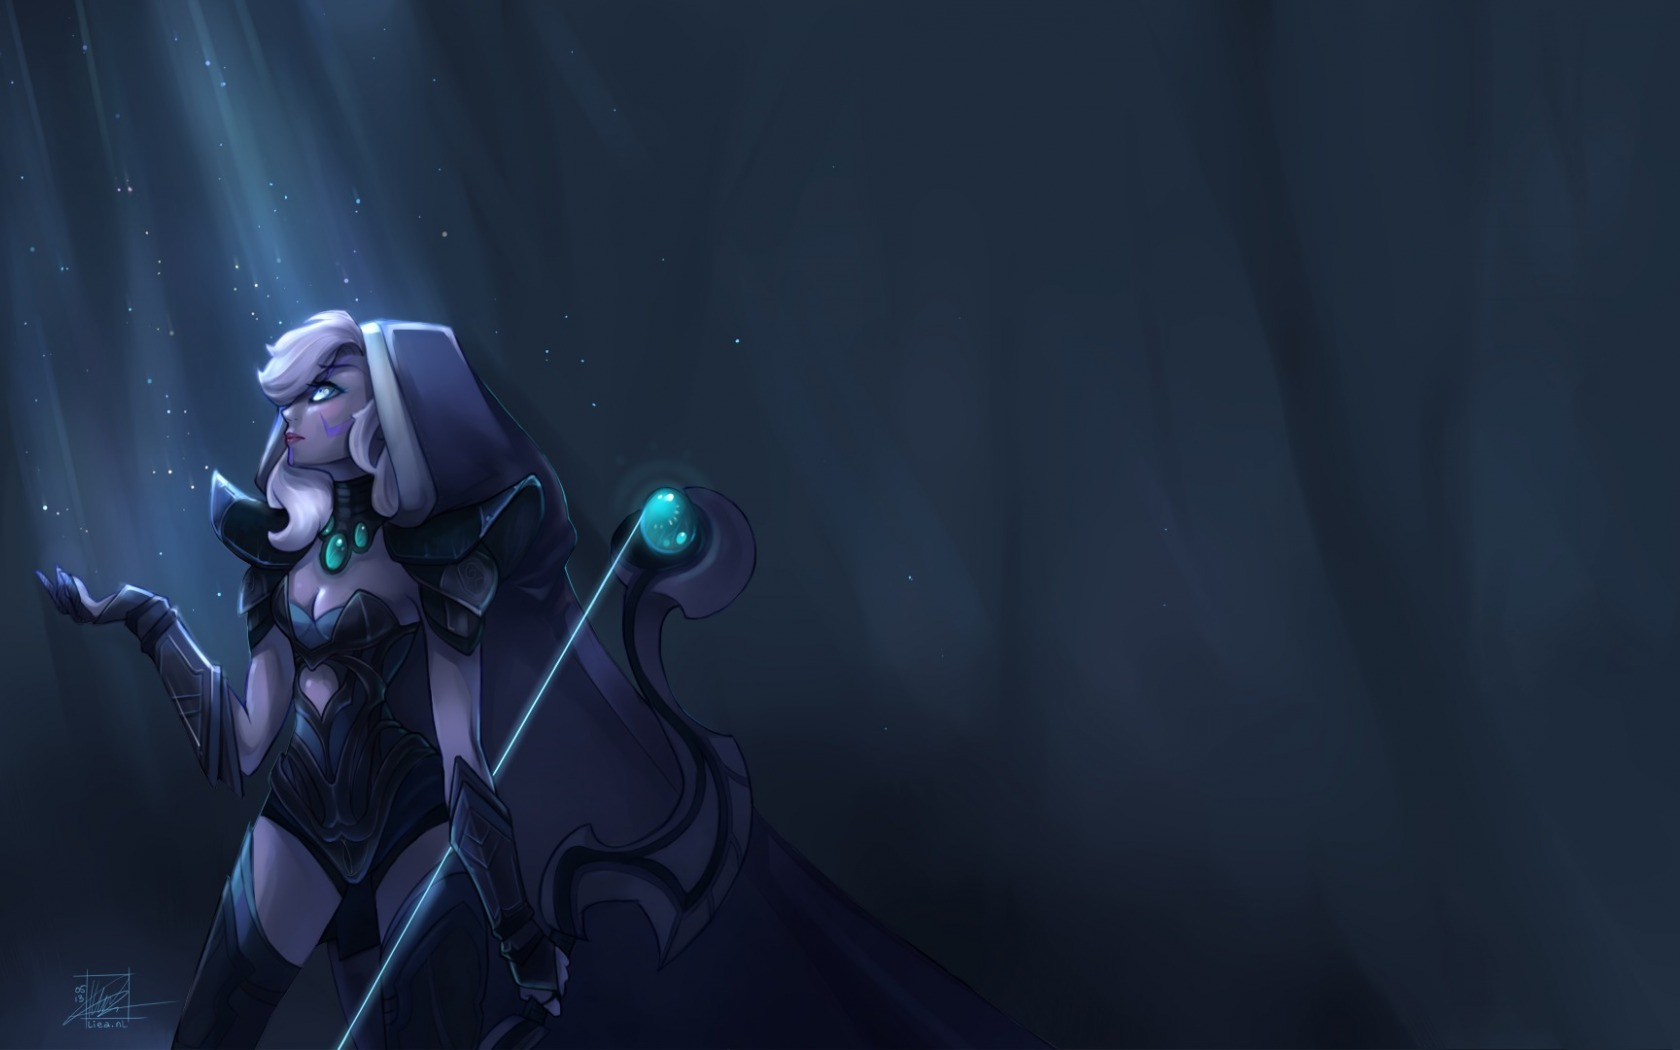 Drow Ranger ART new desktop